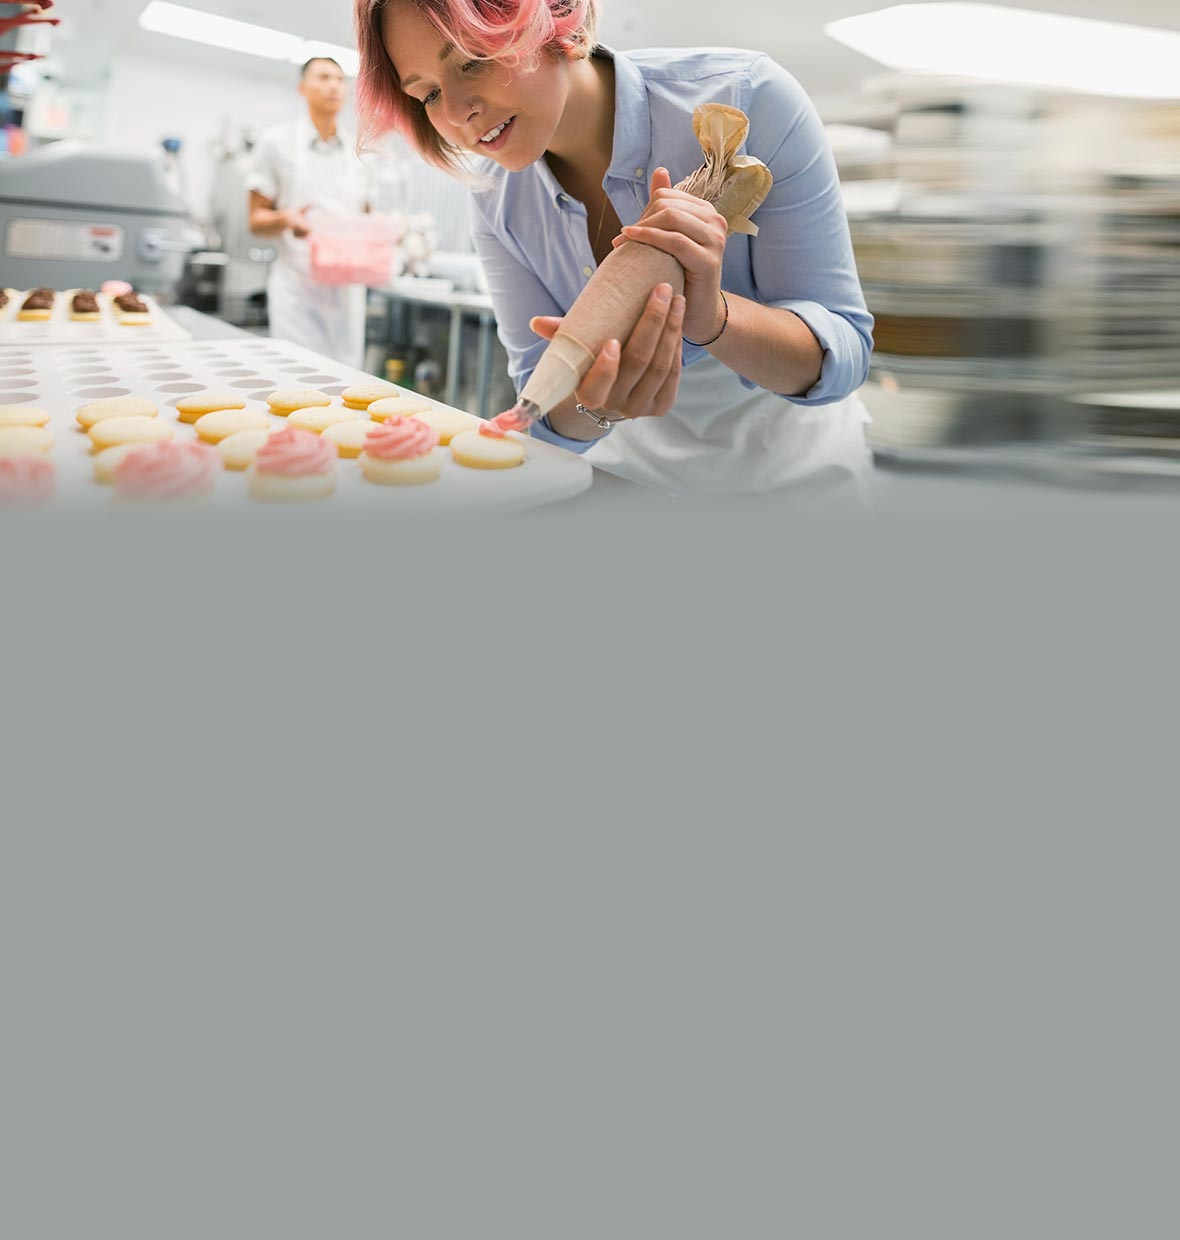 Woman piping icing onto cupcakes in a small business commercial kitchen